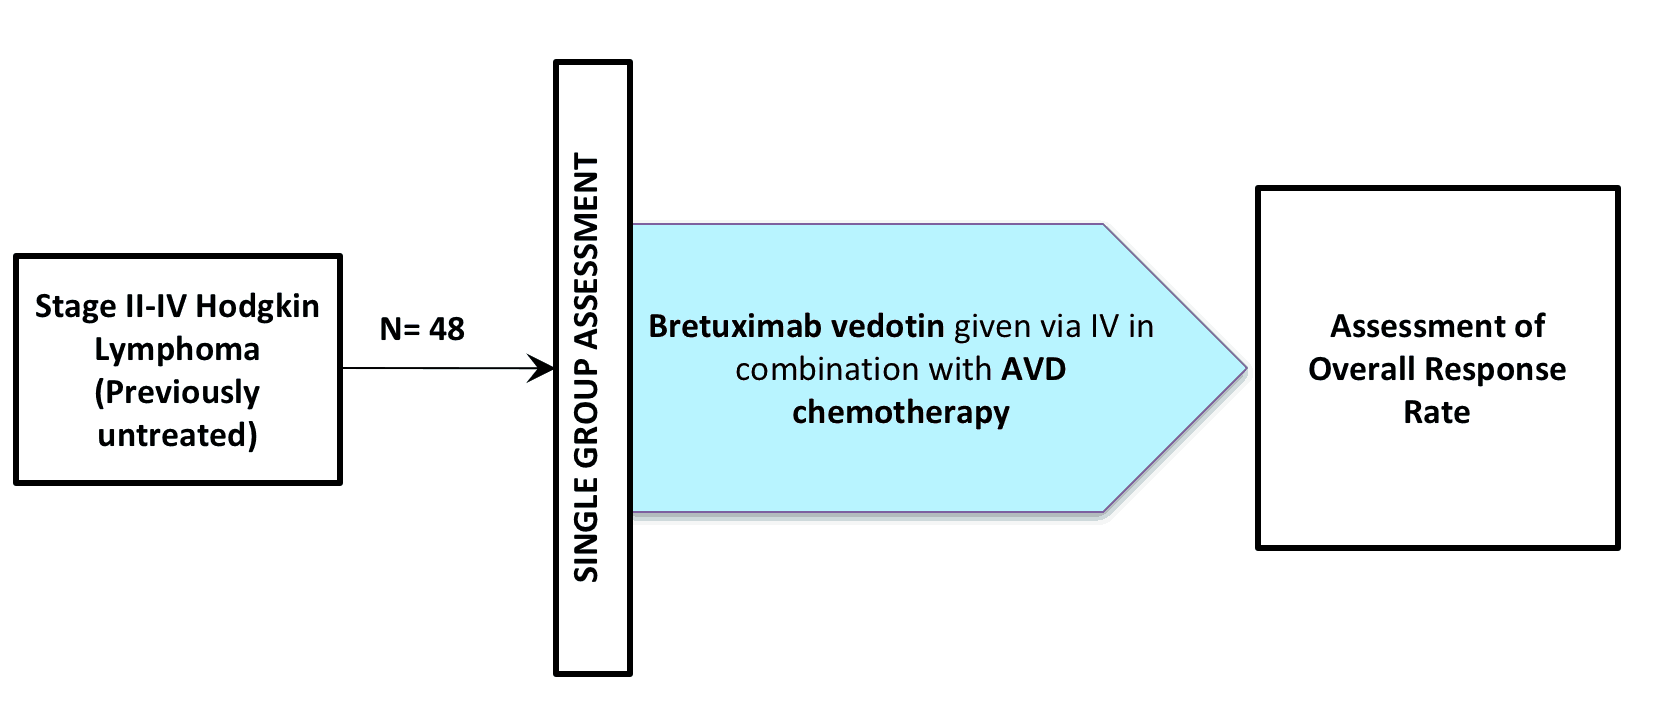 NCT01476410 (CLINICAL TRIAL / BRENTUXIMAB VEDOTIN / SGN-035 / ADCETRIS®)